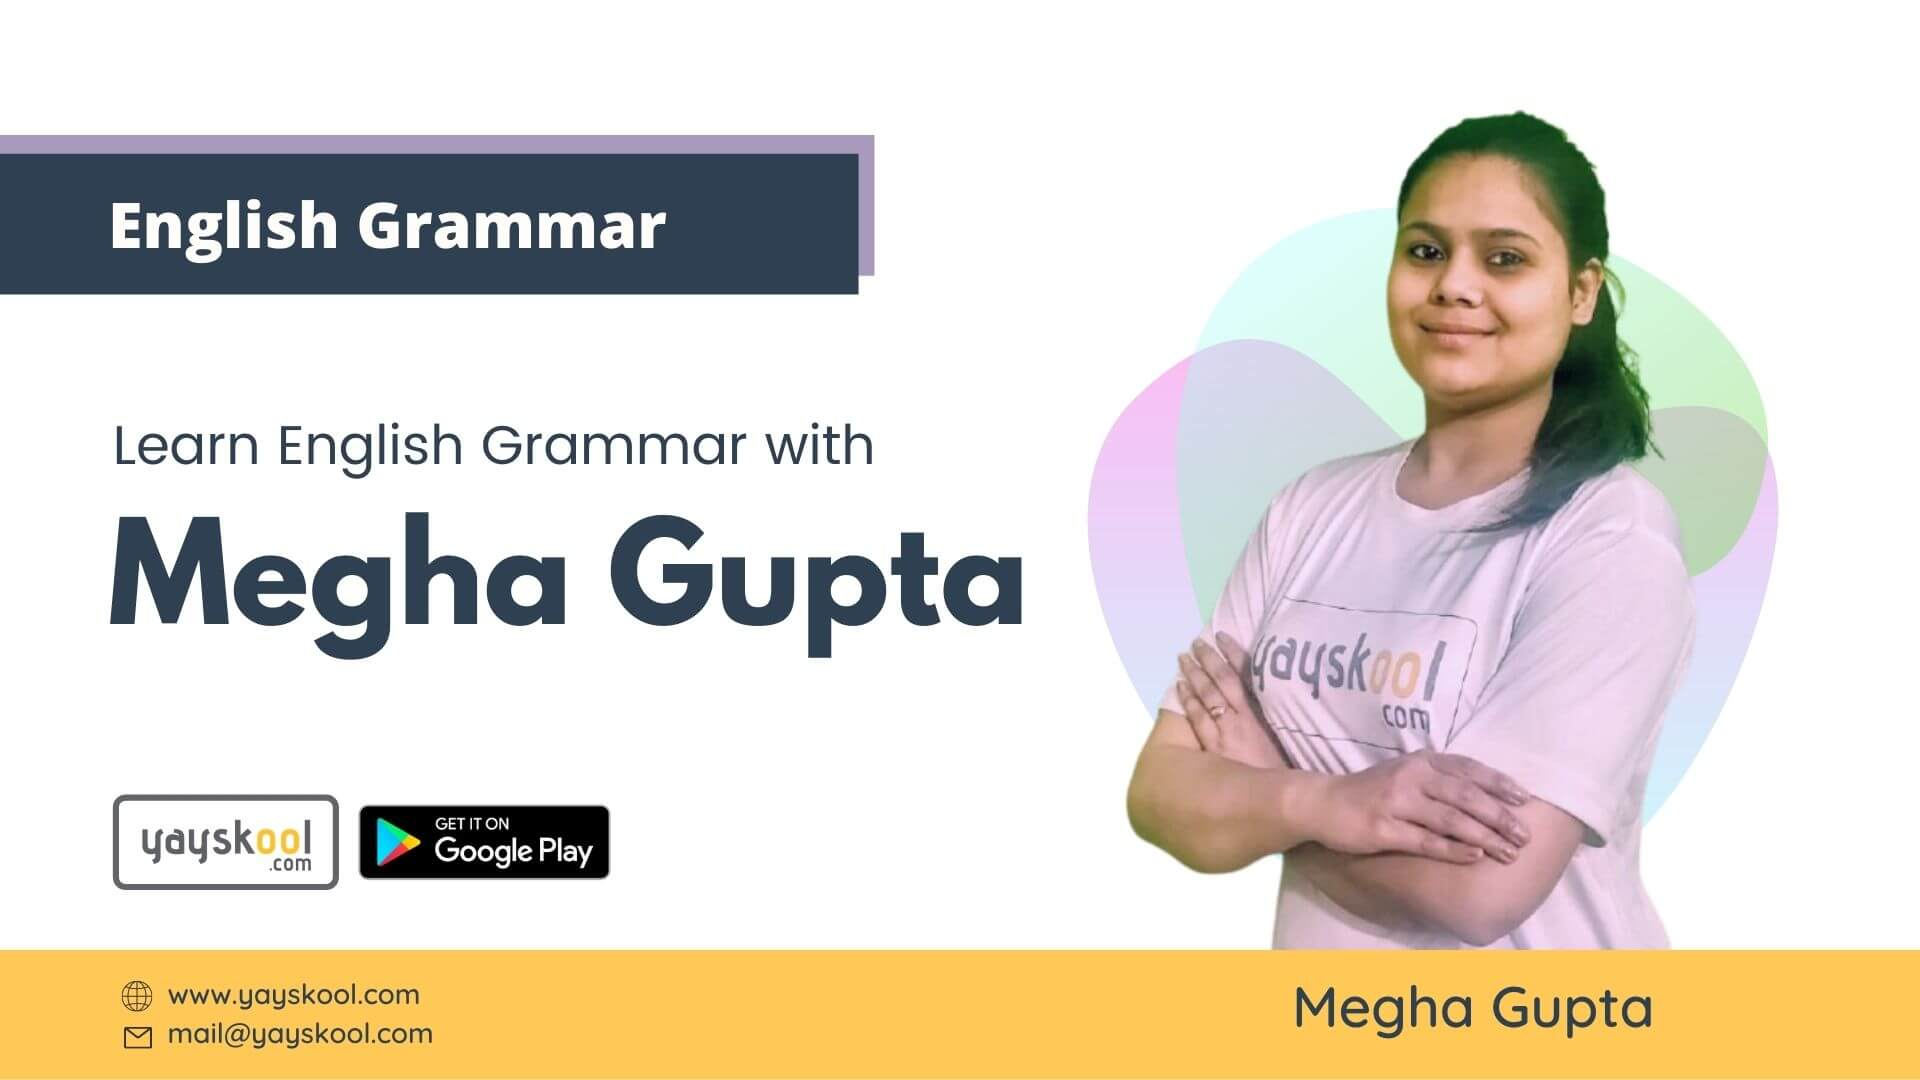 Learn English Grammar with Megha Gupta